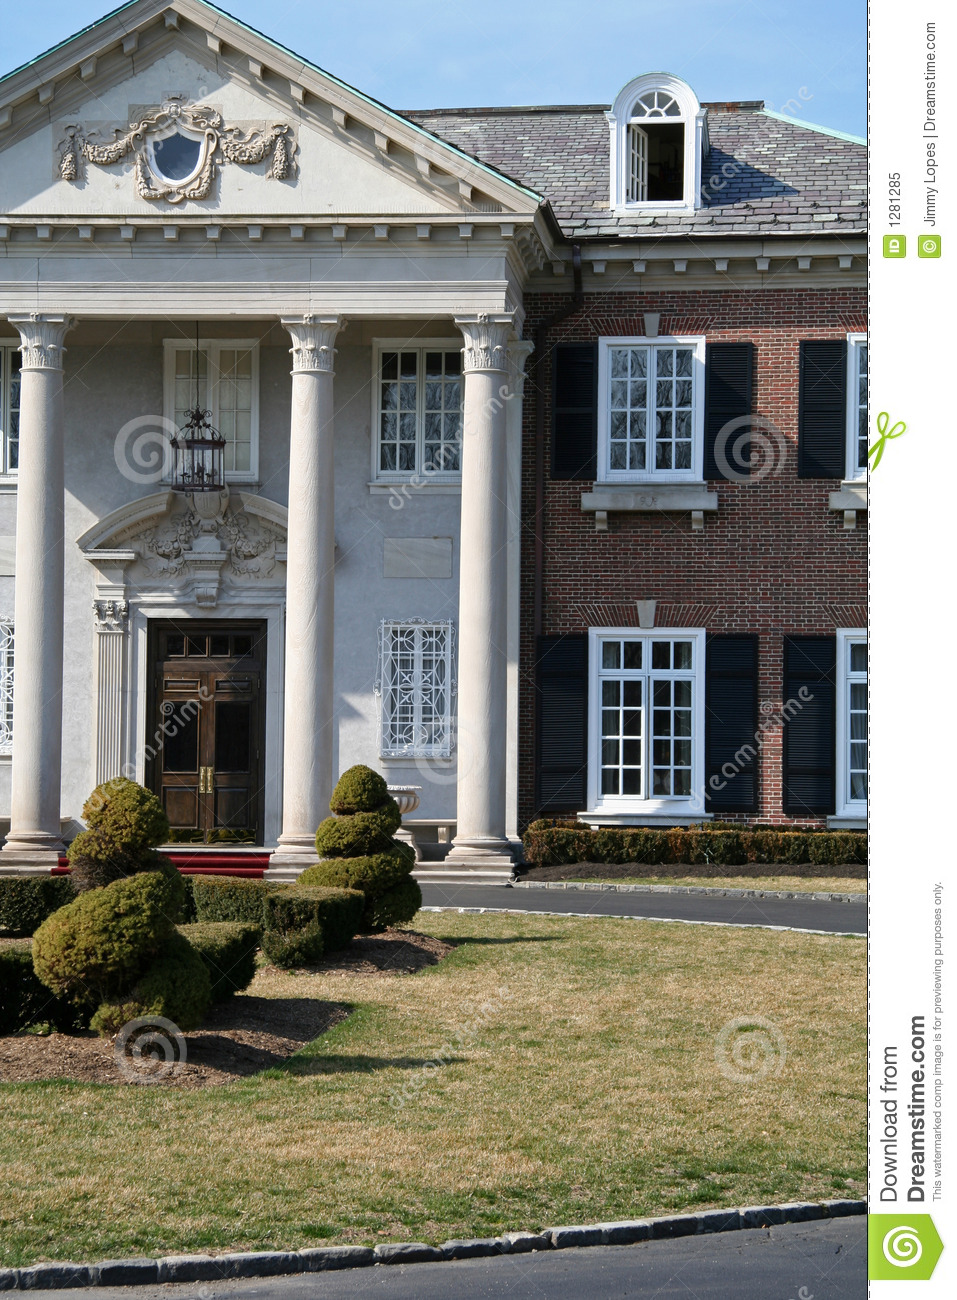 Luxury home royalty free stock photo image 1281285 for Free luxury home images